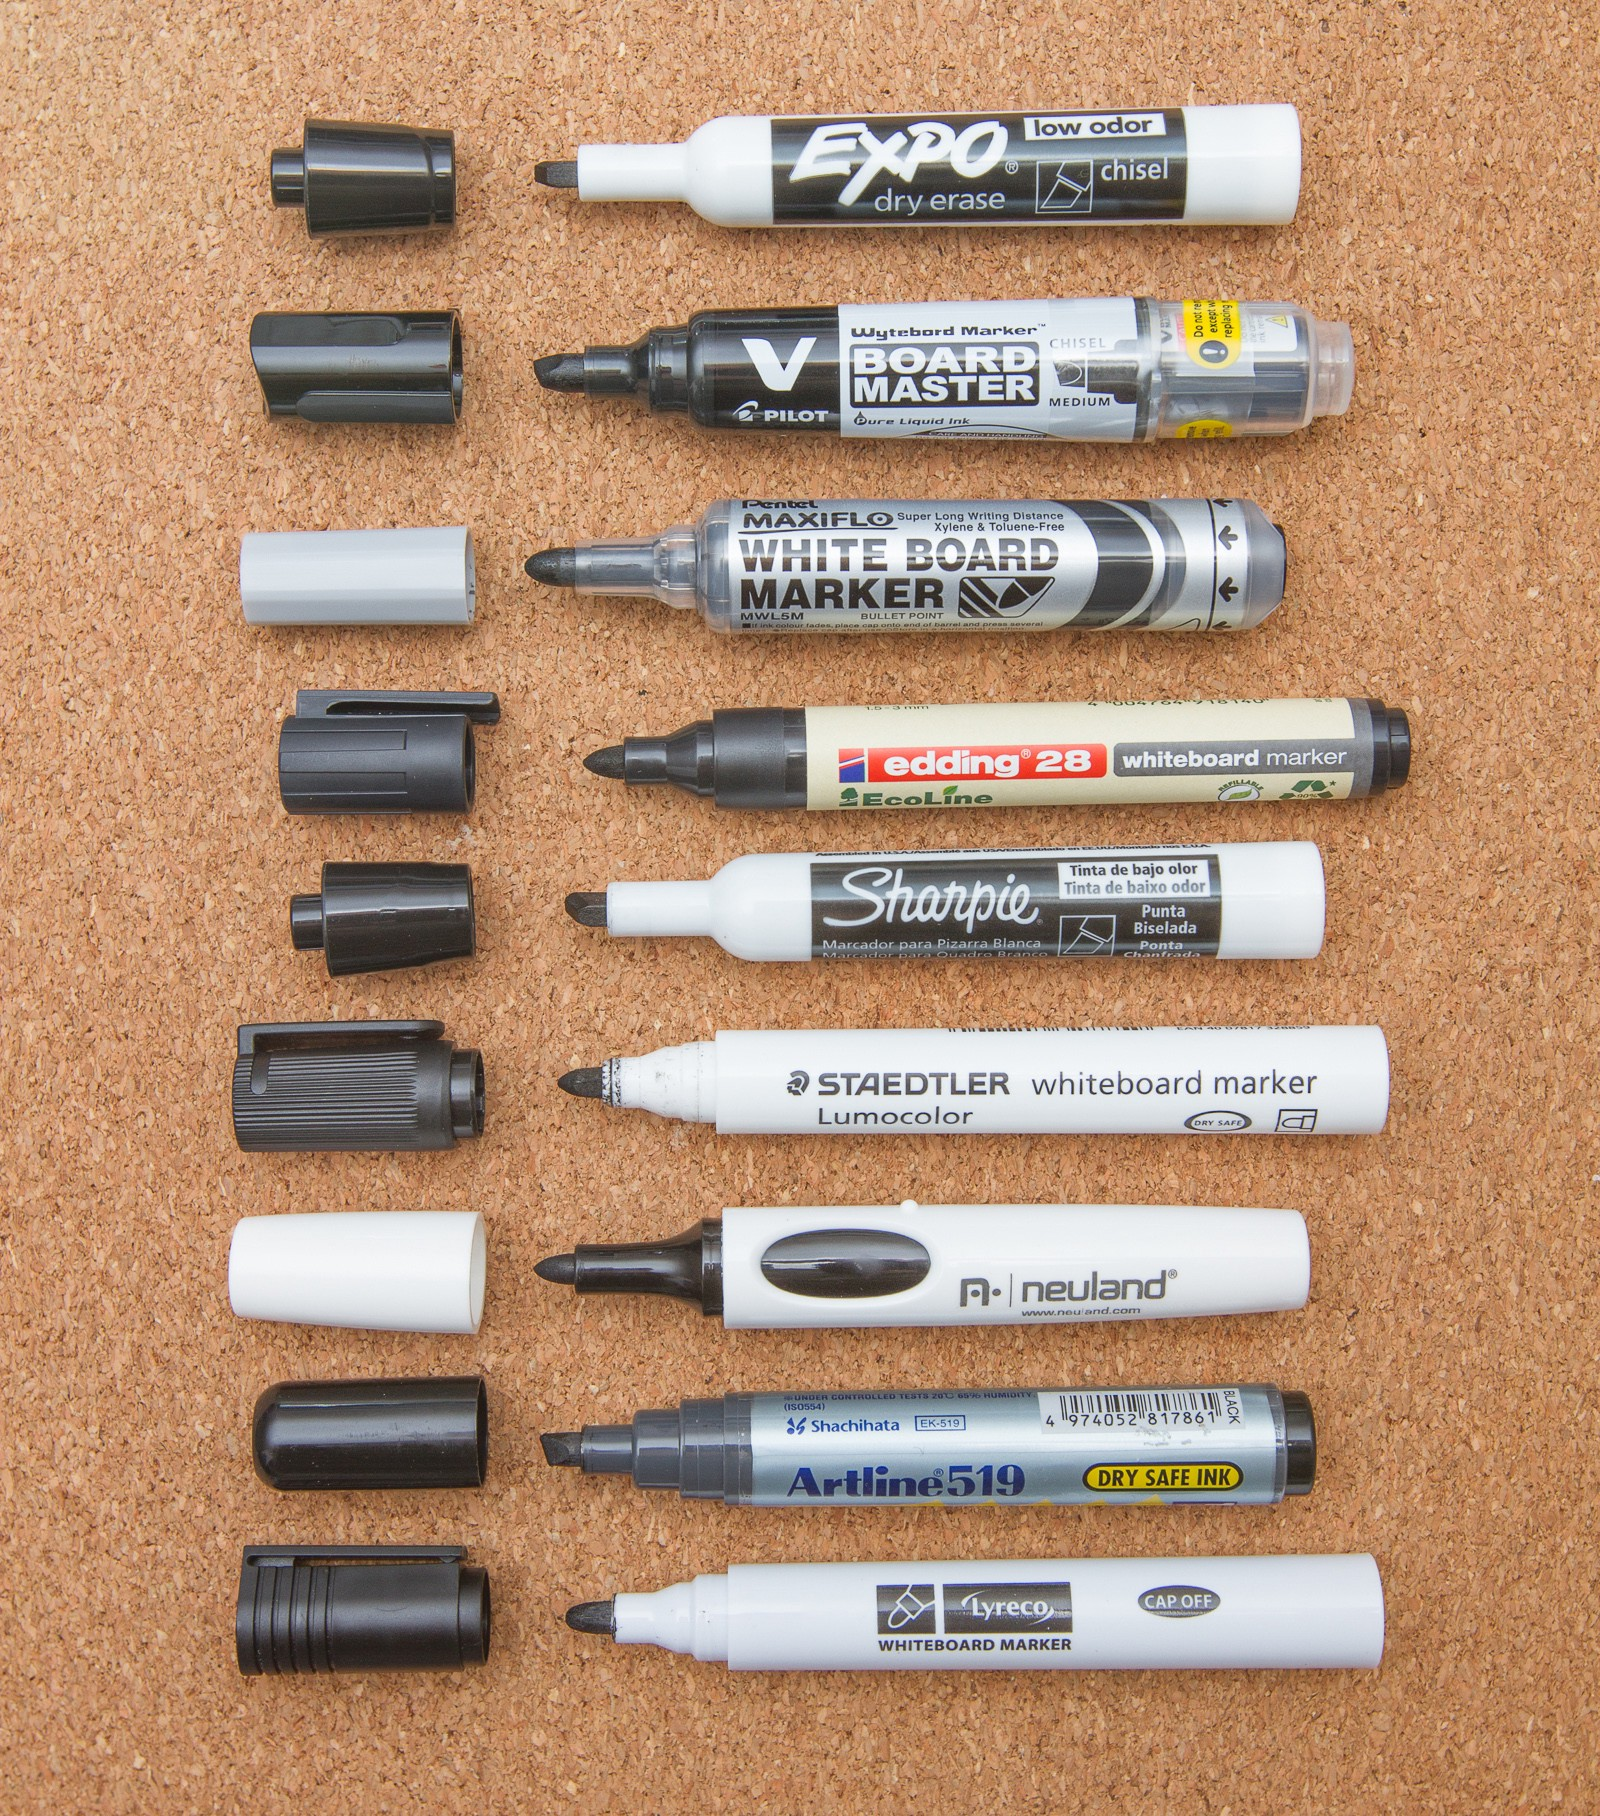 All You Need To Know About Whiteboard Markers Graphicfacilitation Tool Tip Repair A Circuit Board Skool Form Factor Comparison Of Under Consideration